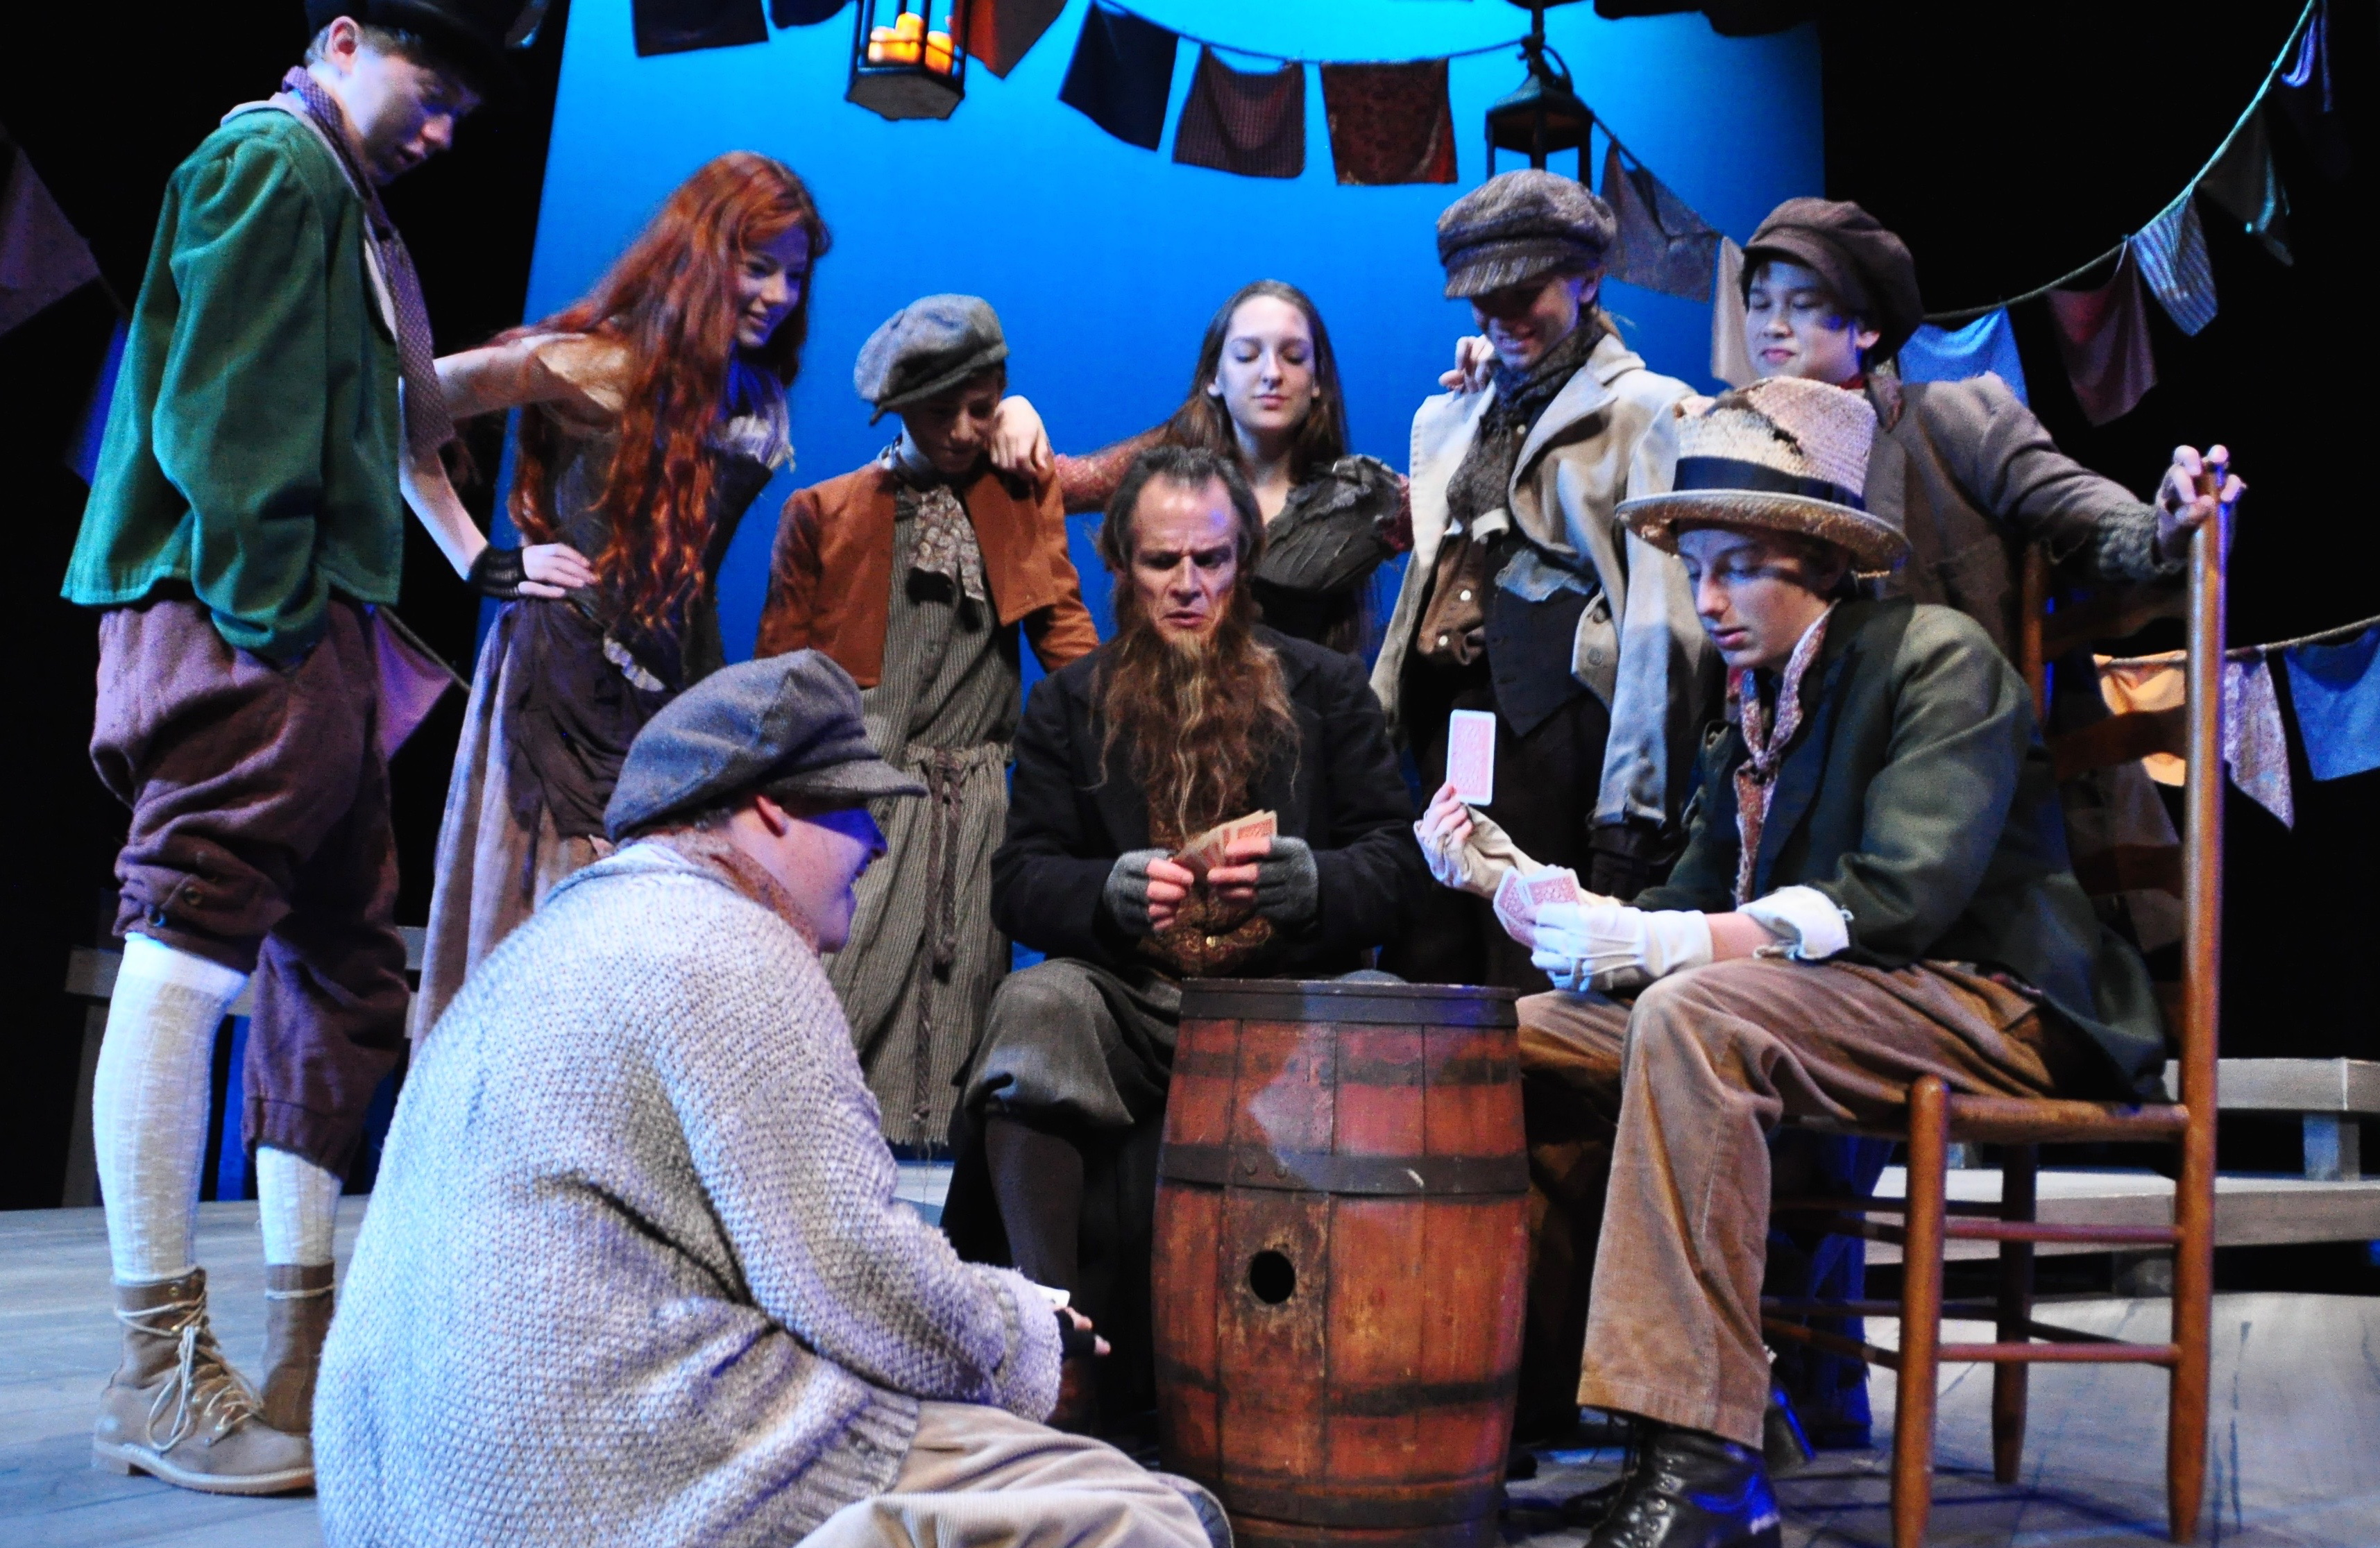 They're playing with a full deck but the game isn't fair. Fagin (James FitzGerald, bearded) runs the show in this illicit corner of London and young folks like the Artful Dodger (Simon Colker, R, in the torn hat) are his minions.